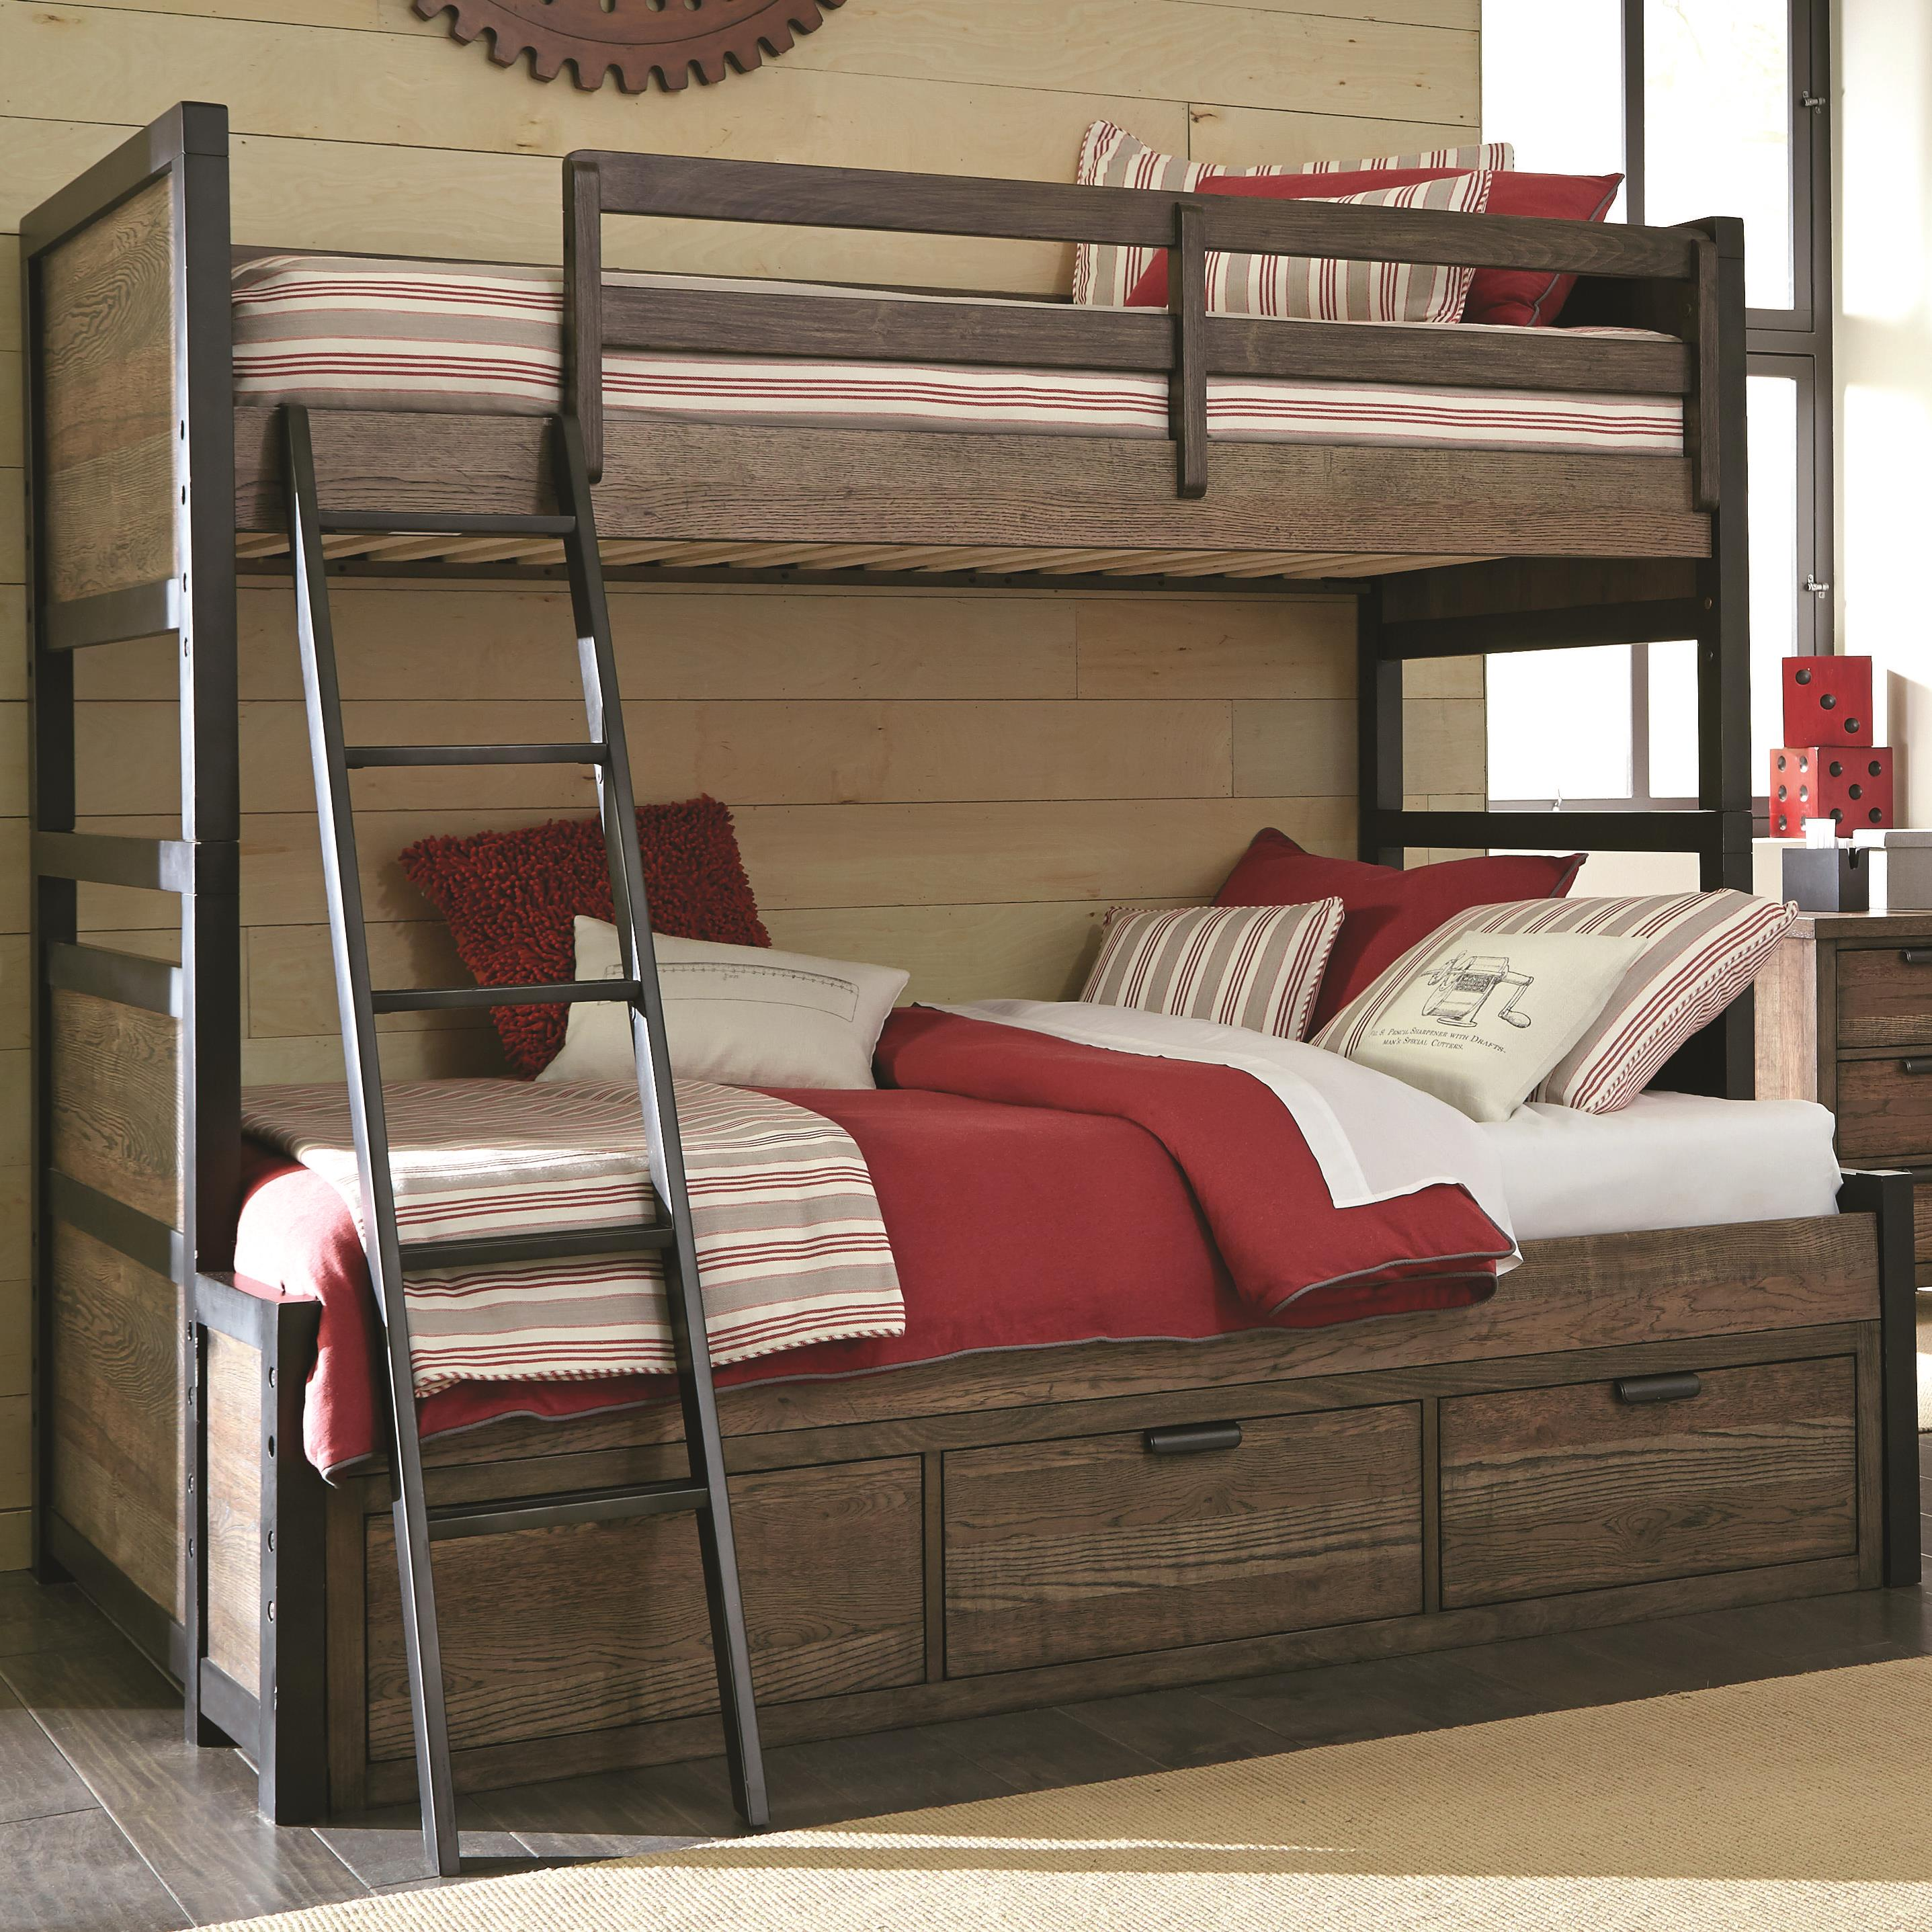 Legacy Classic Kids Fulton County Twin Over Full Bunk Bed with Storage - Item Number: 5900-8140K+9300